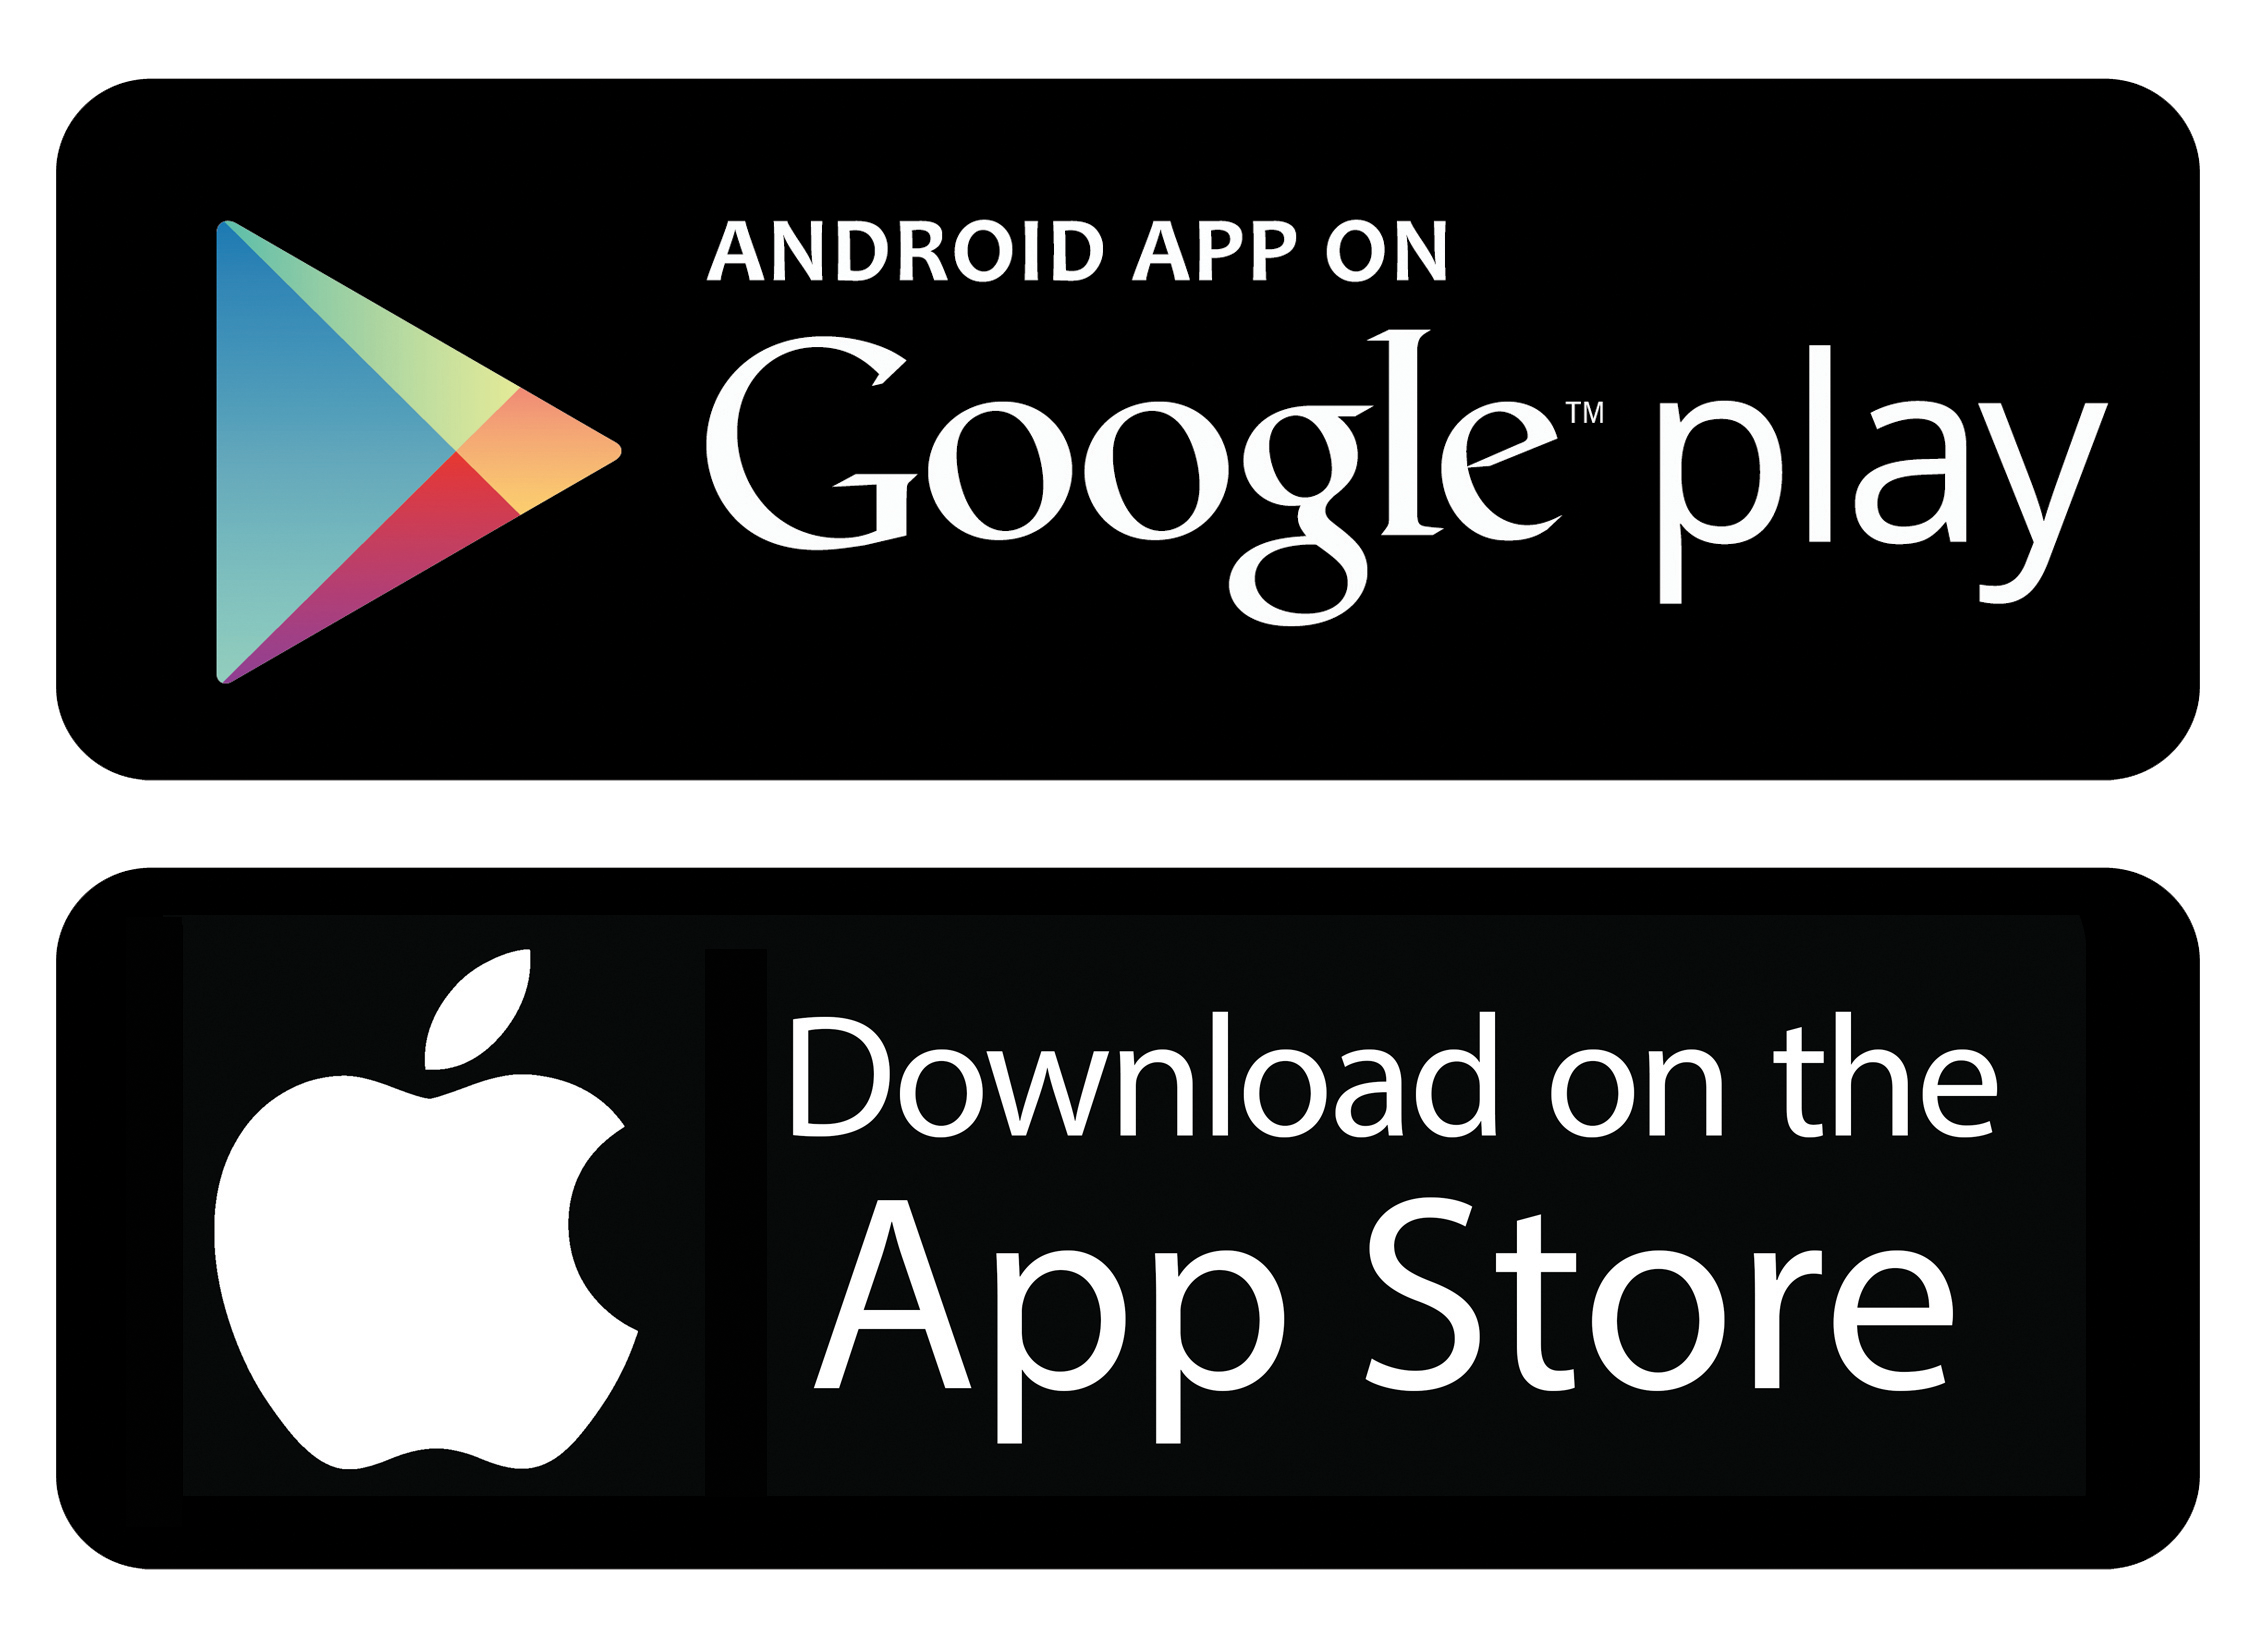 Download Play App Android Now Button Store HQ PNG Image | FreePNGImg